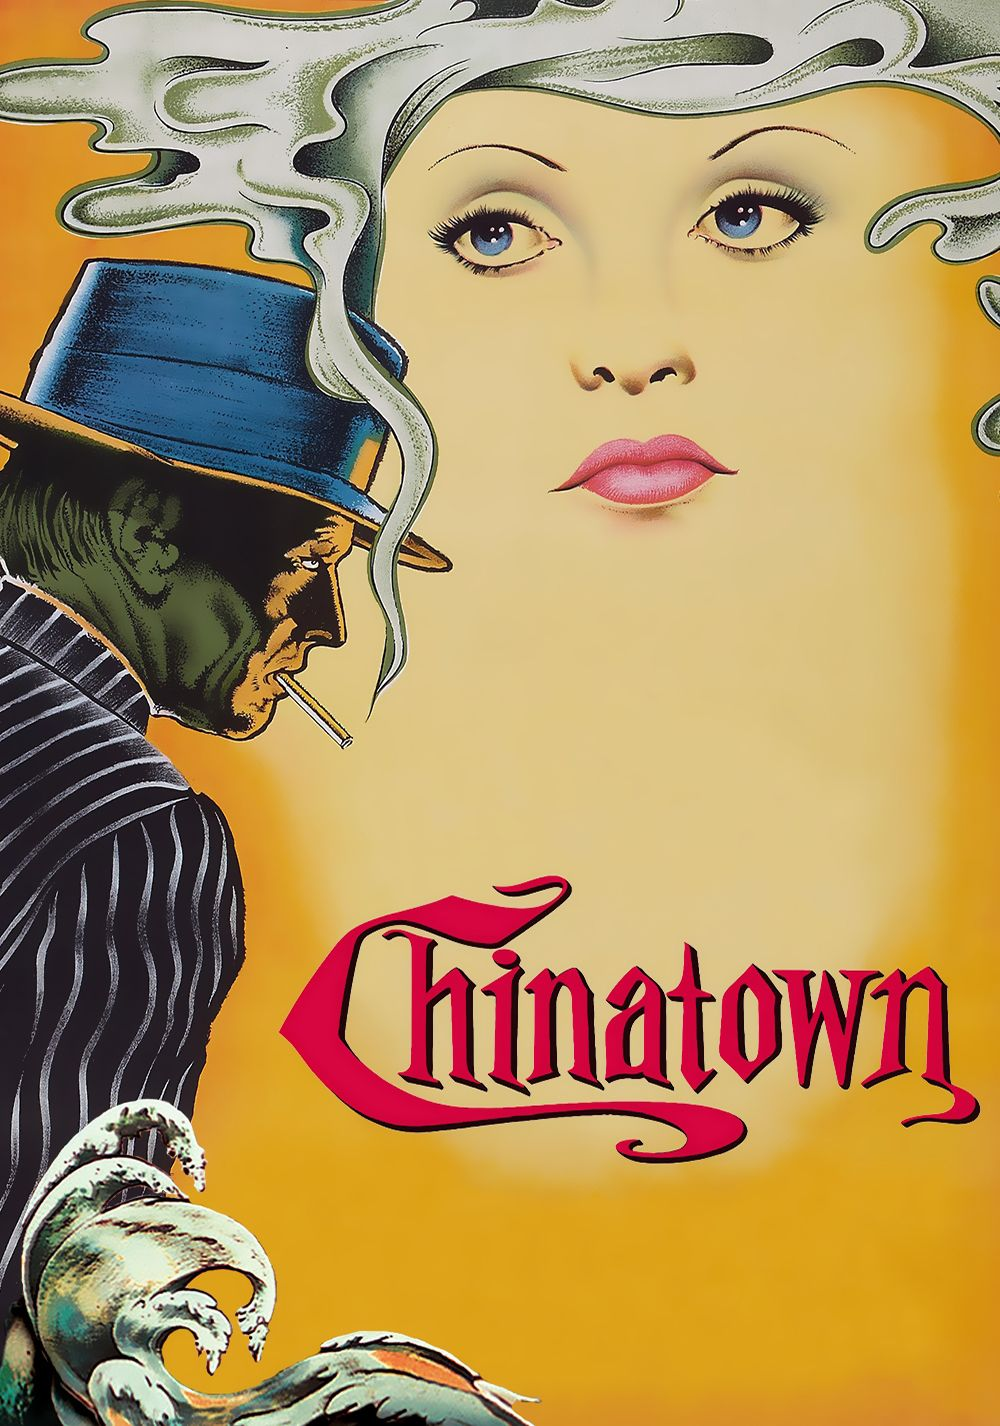 Chinatown poster | Chinatown movie poster image | Movie posters ...